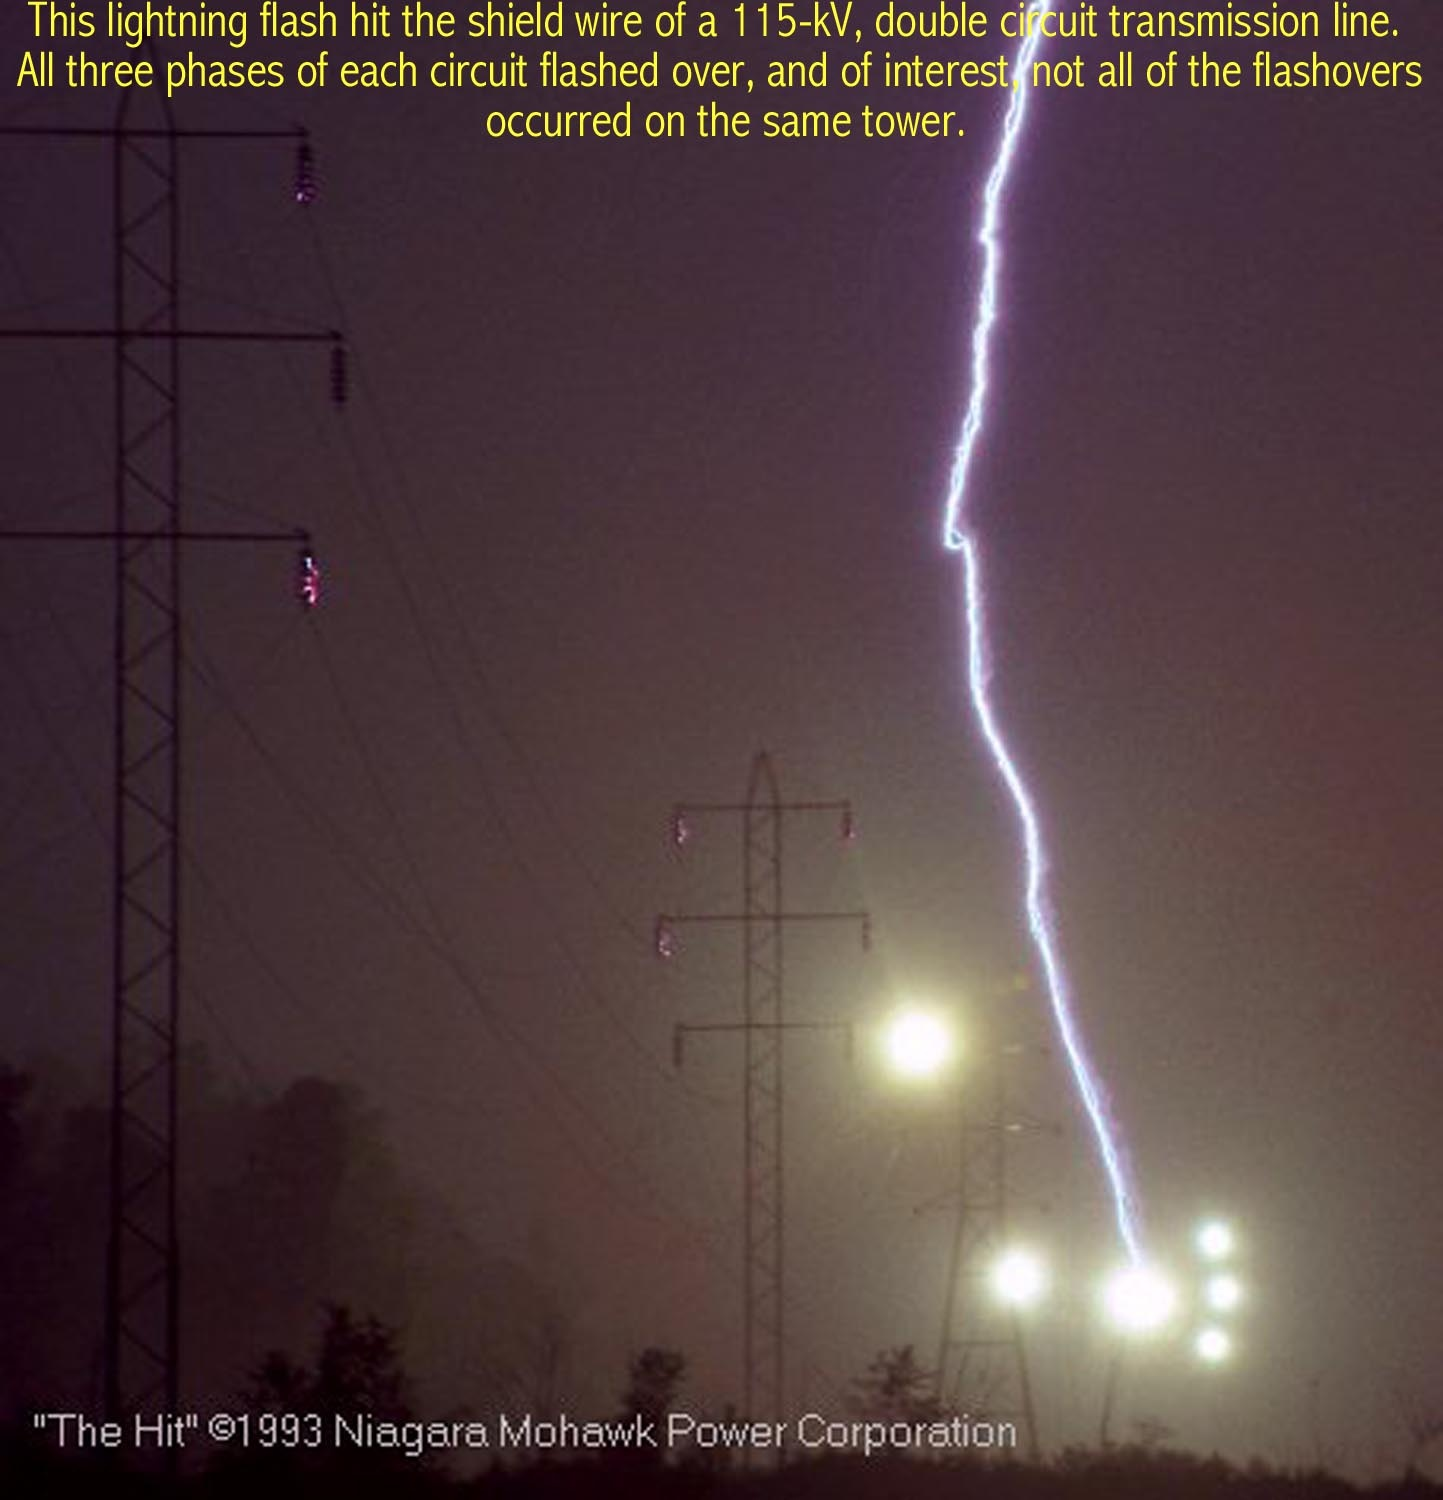 In All These Cases High Voltage Lightning Surges Speed Away In Both Directions Along The Transmission Lines Until They Encounter Protective Lighting